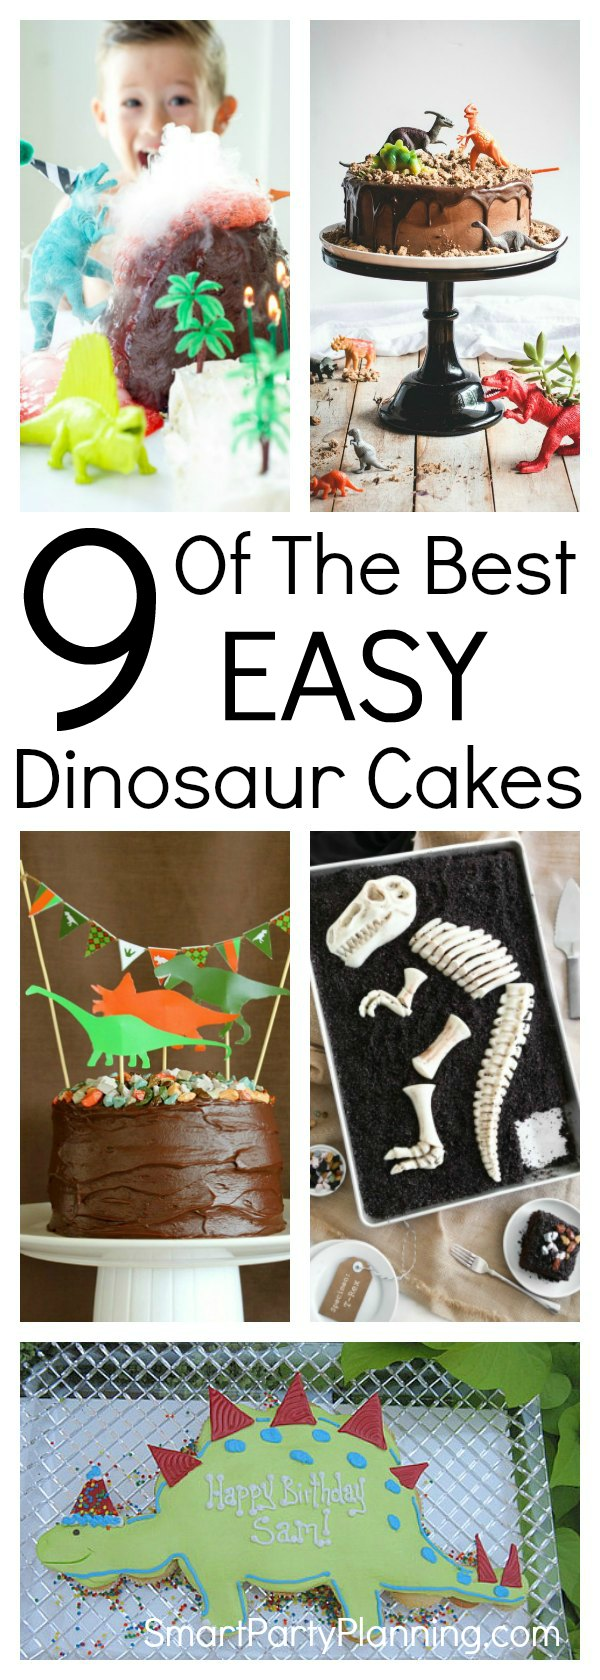 9 of the best easy dinosaur cakes